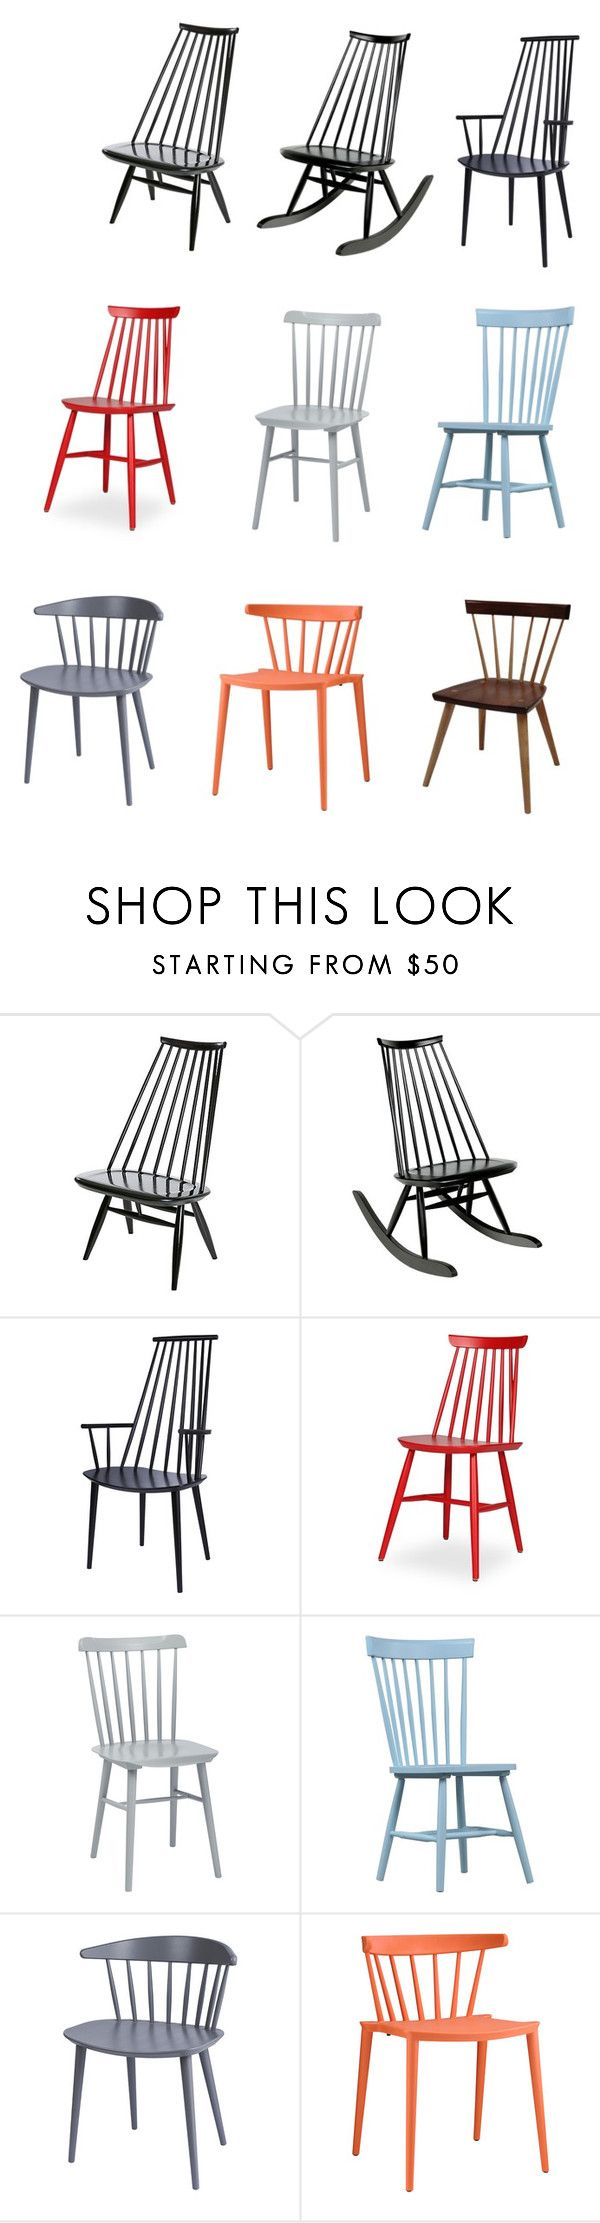 """pinnatuolit"" by anemo ❤ liked on Polyvore featuring interior, interiors, interior design, home, home decor, interior decorating, Artek, HAY, Serena & Lily and Modway"